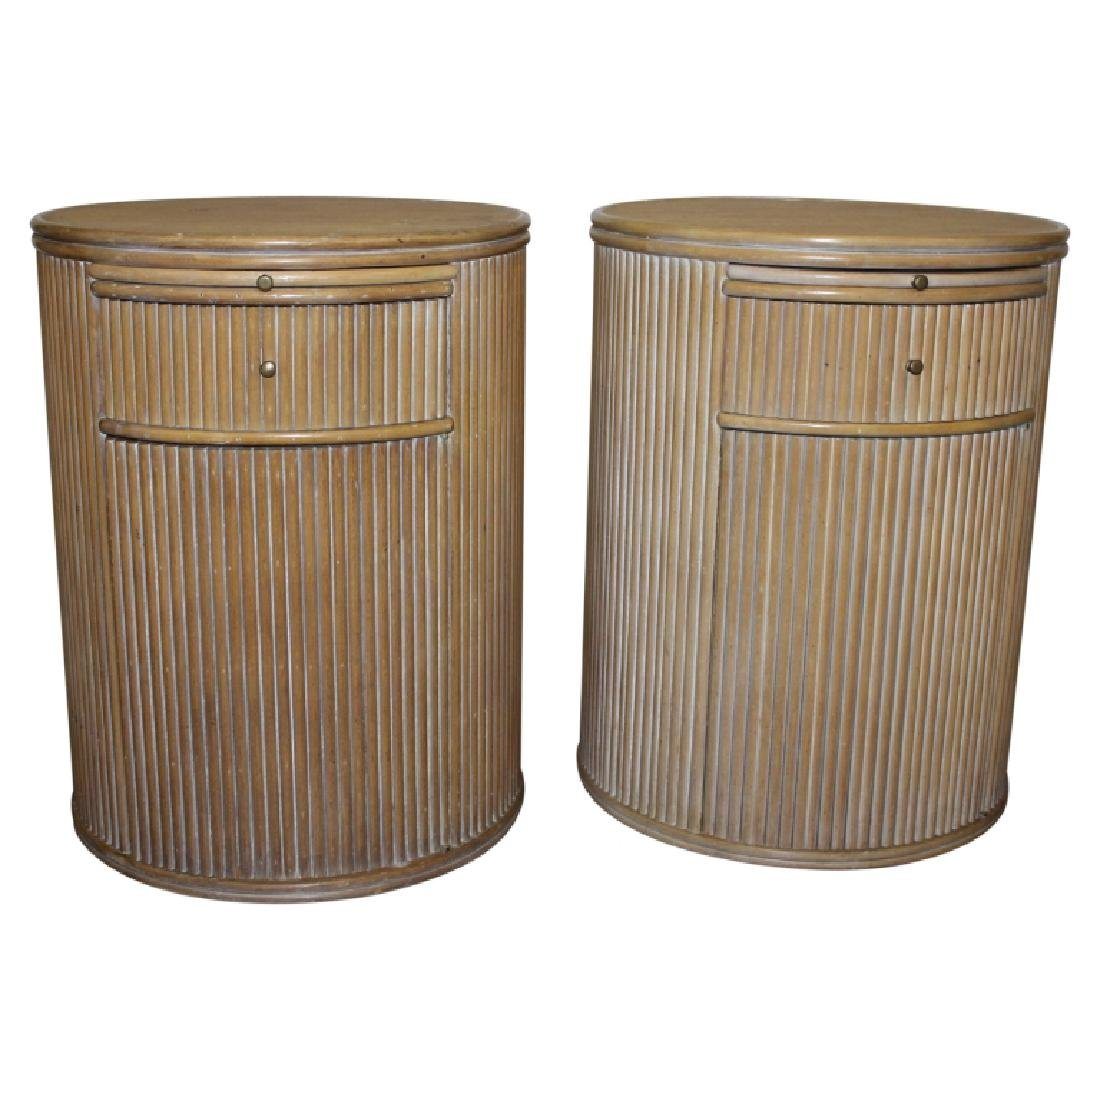 PAIR OF MID-CENTURY, CERUSED, OAK, ROUND SIDE TABLES